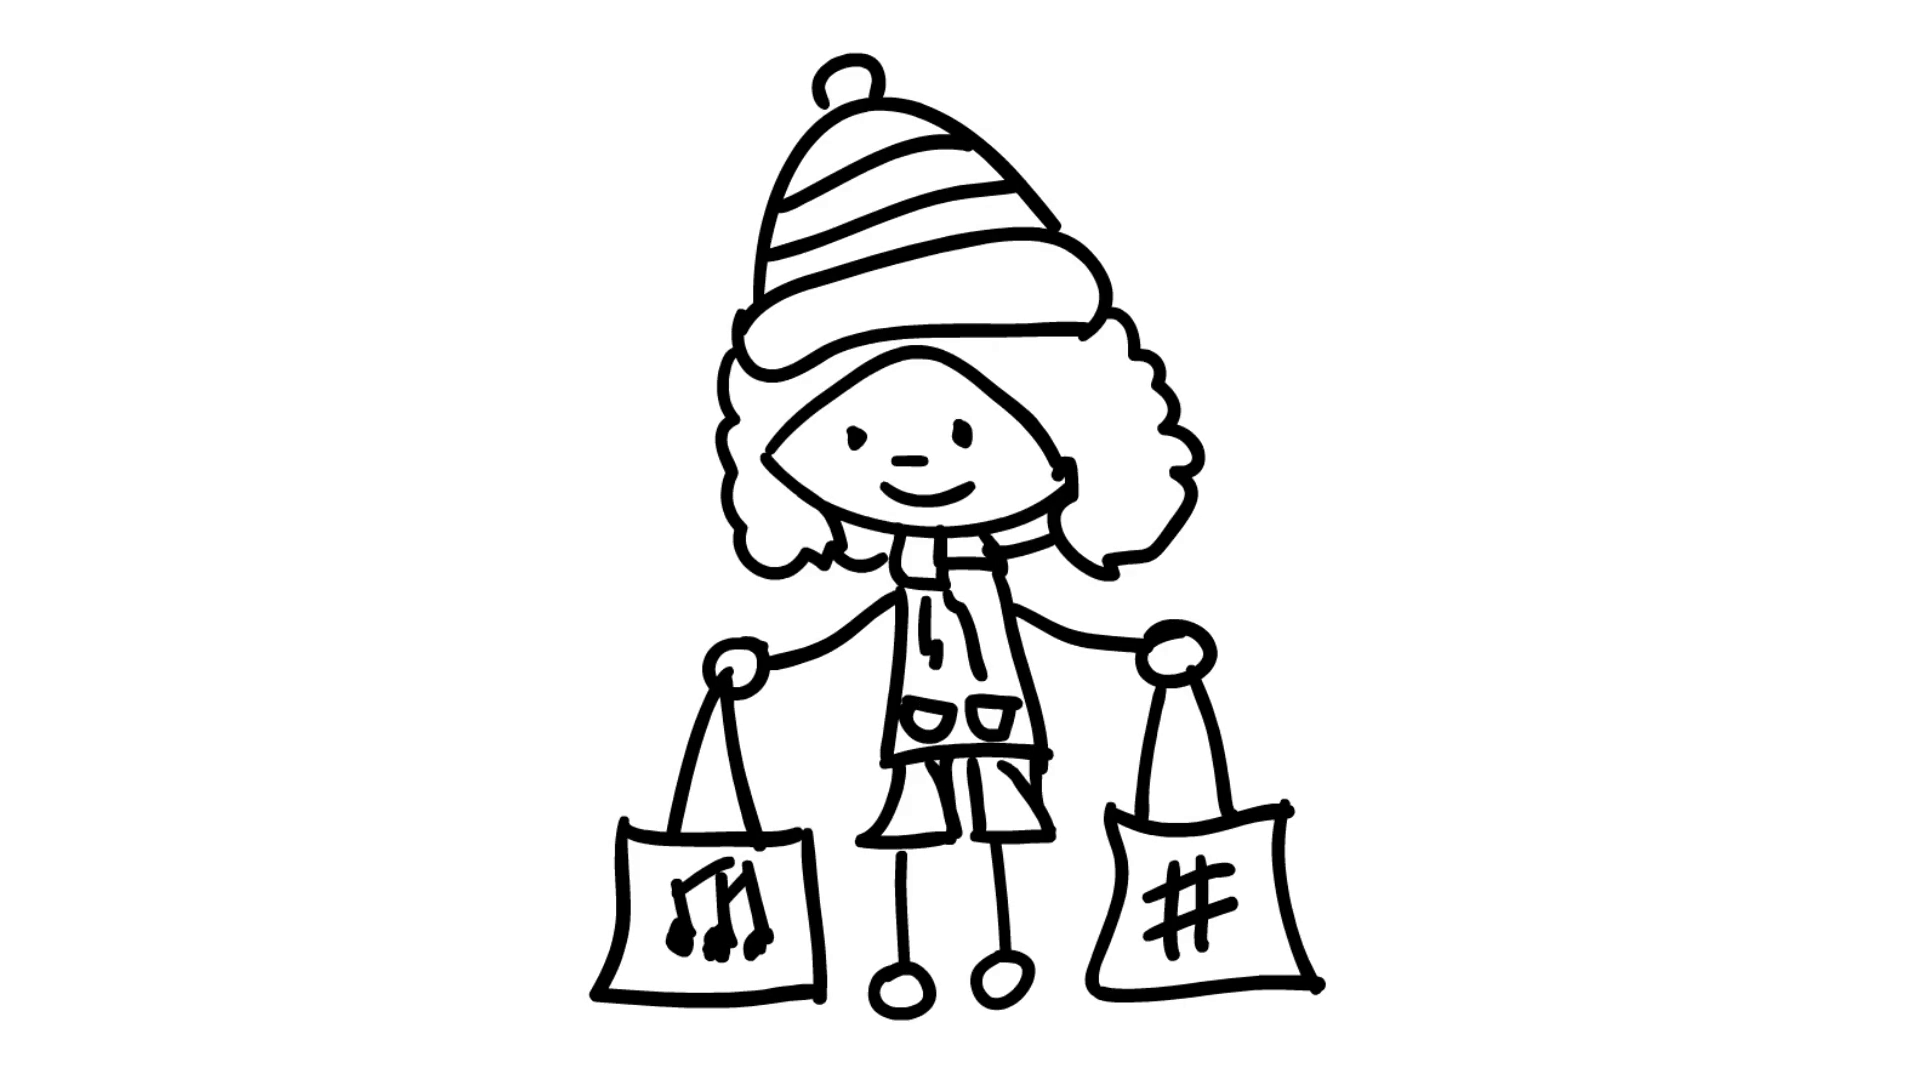 1920x1080 Christmas Kids Shopping With Bags In Hand Line Drawing